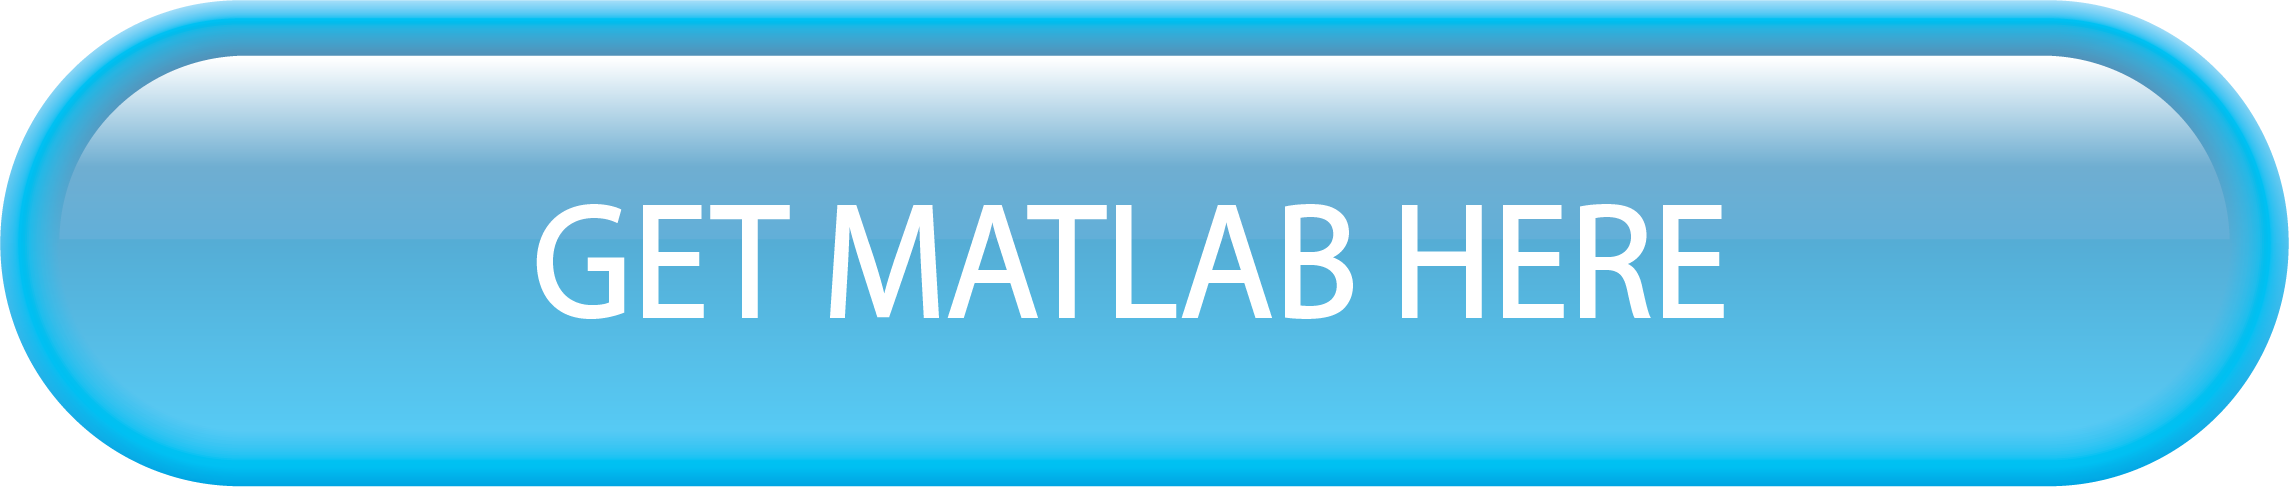 get matlab here